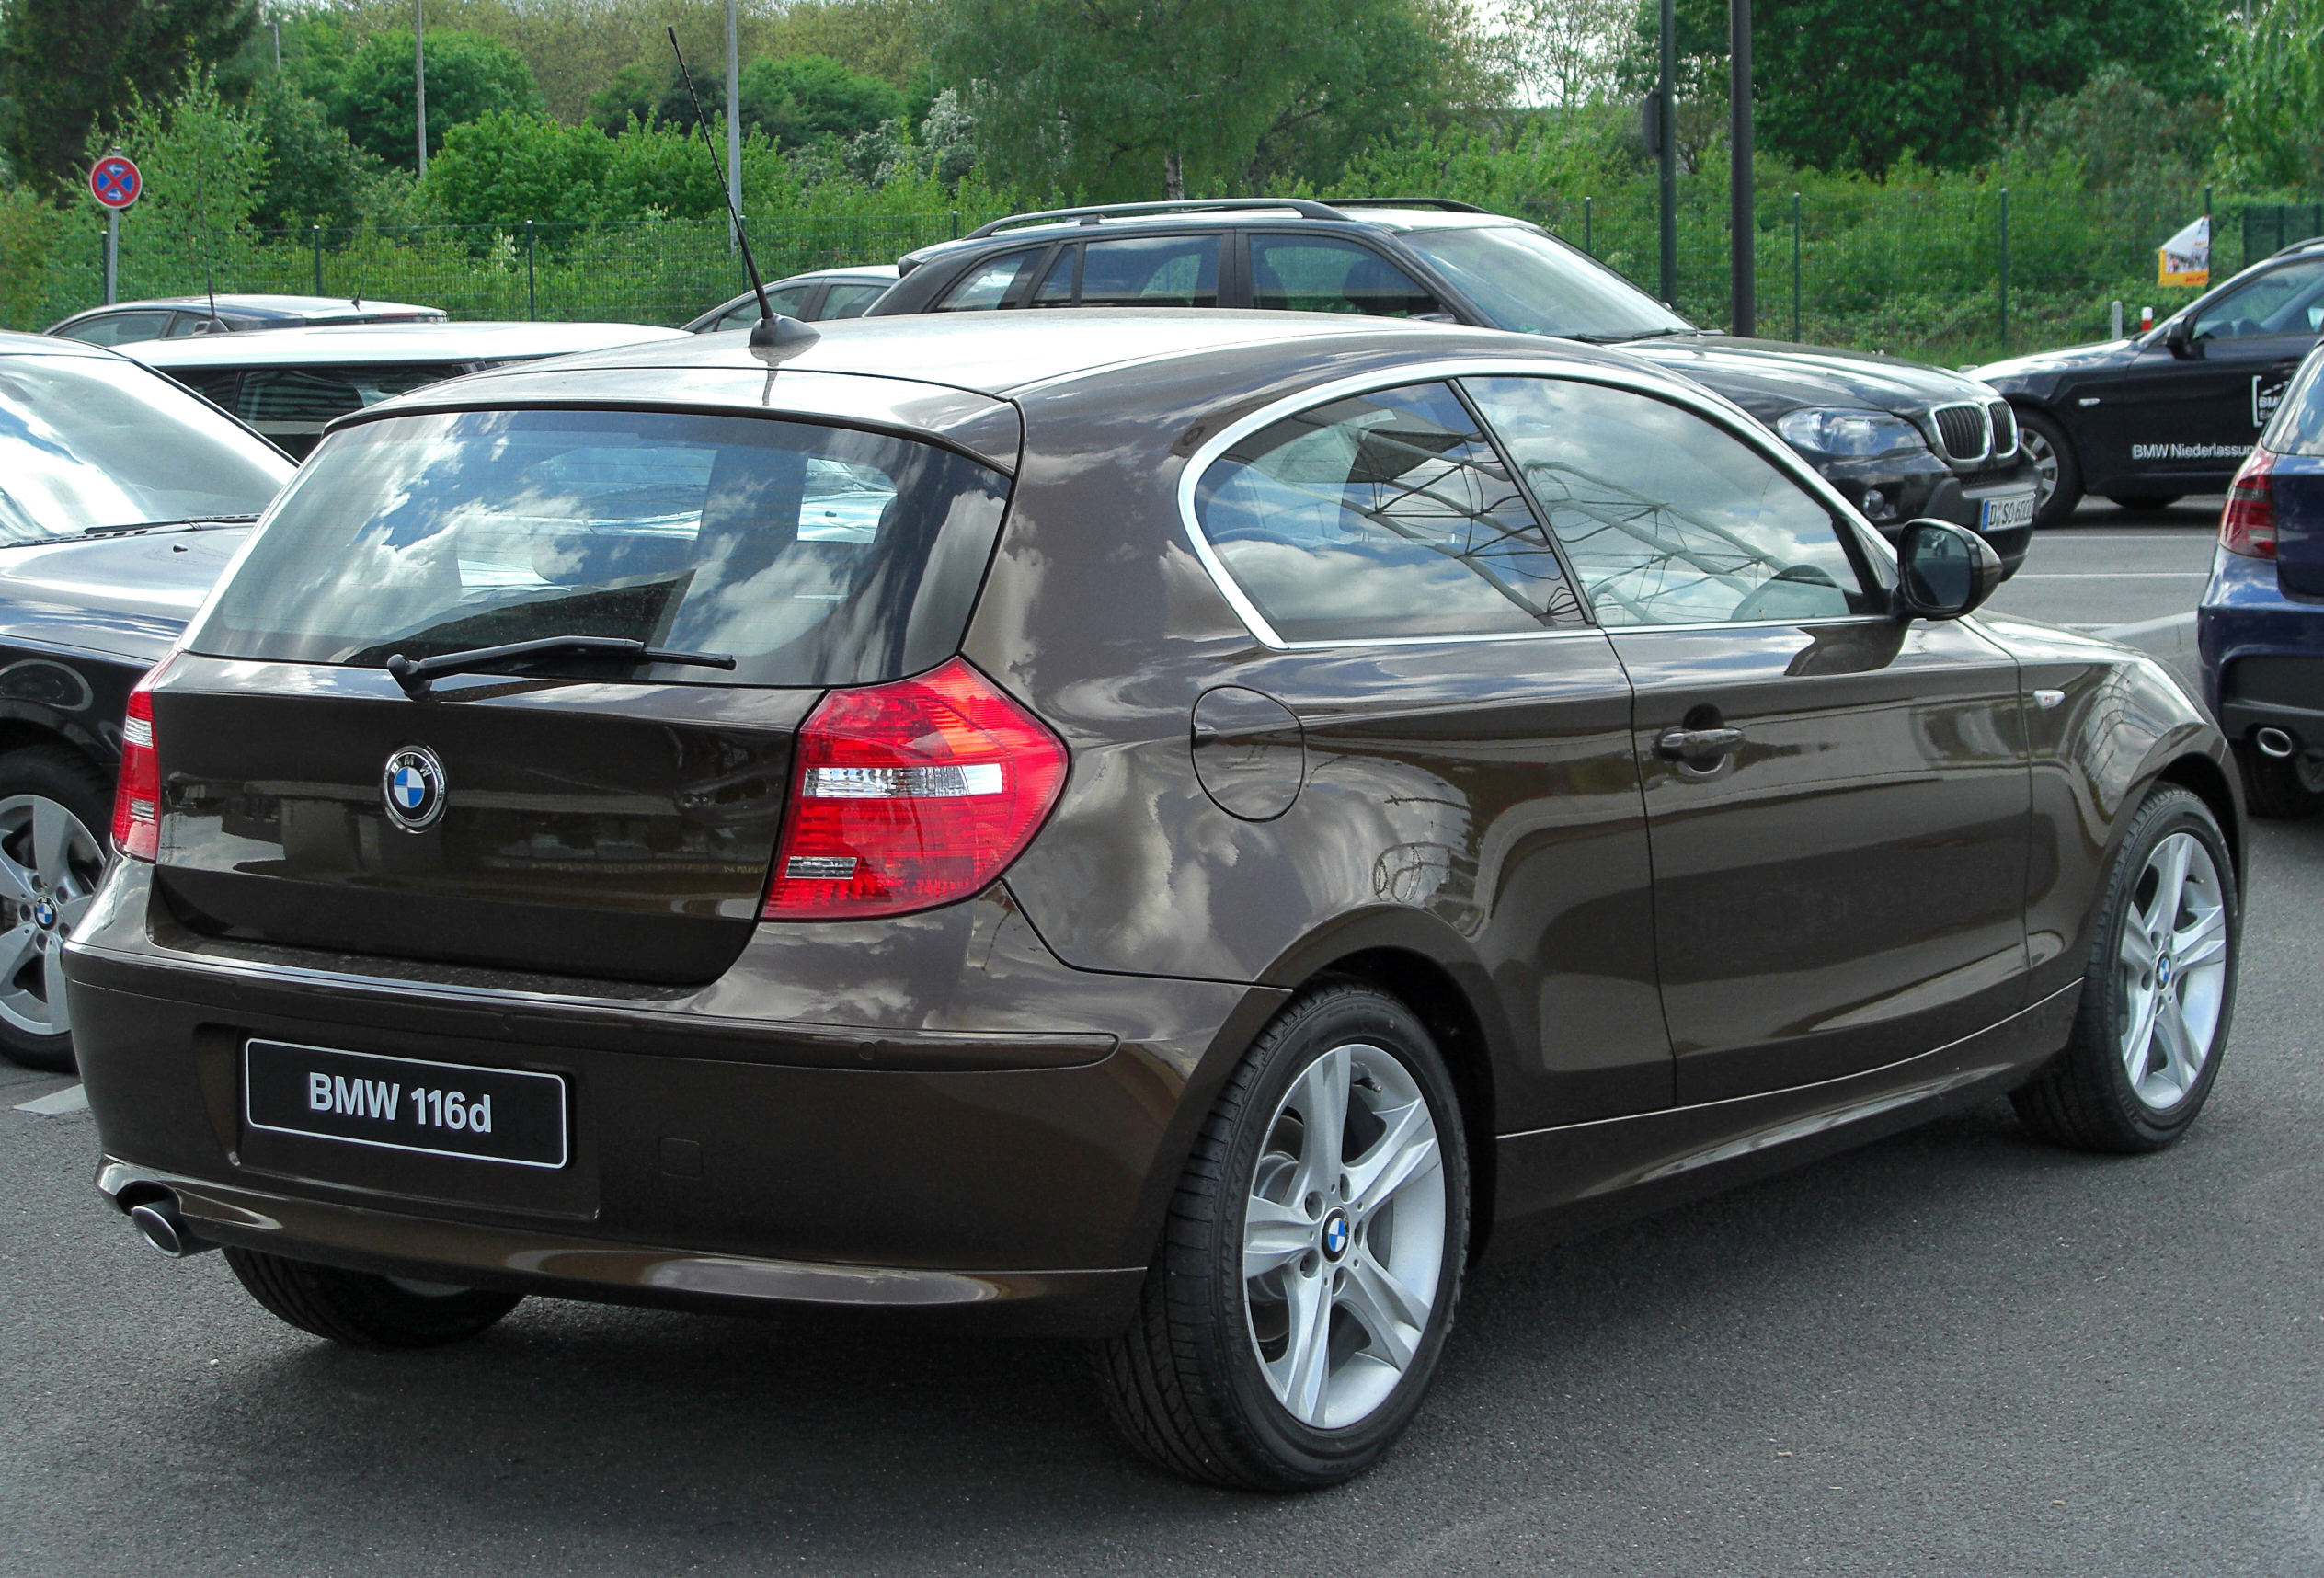 File Bmw 116d E81 Facelift Rear 20100501 Jpg Wikimedia